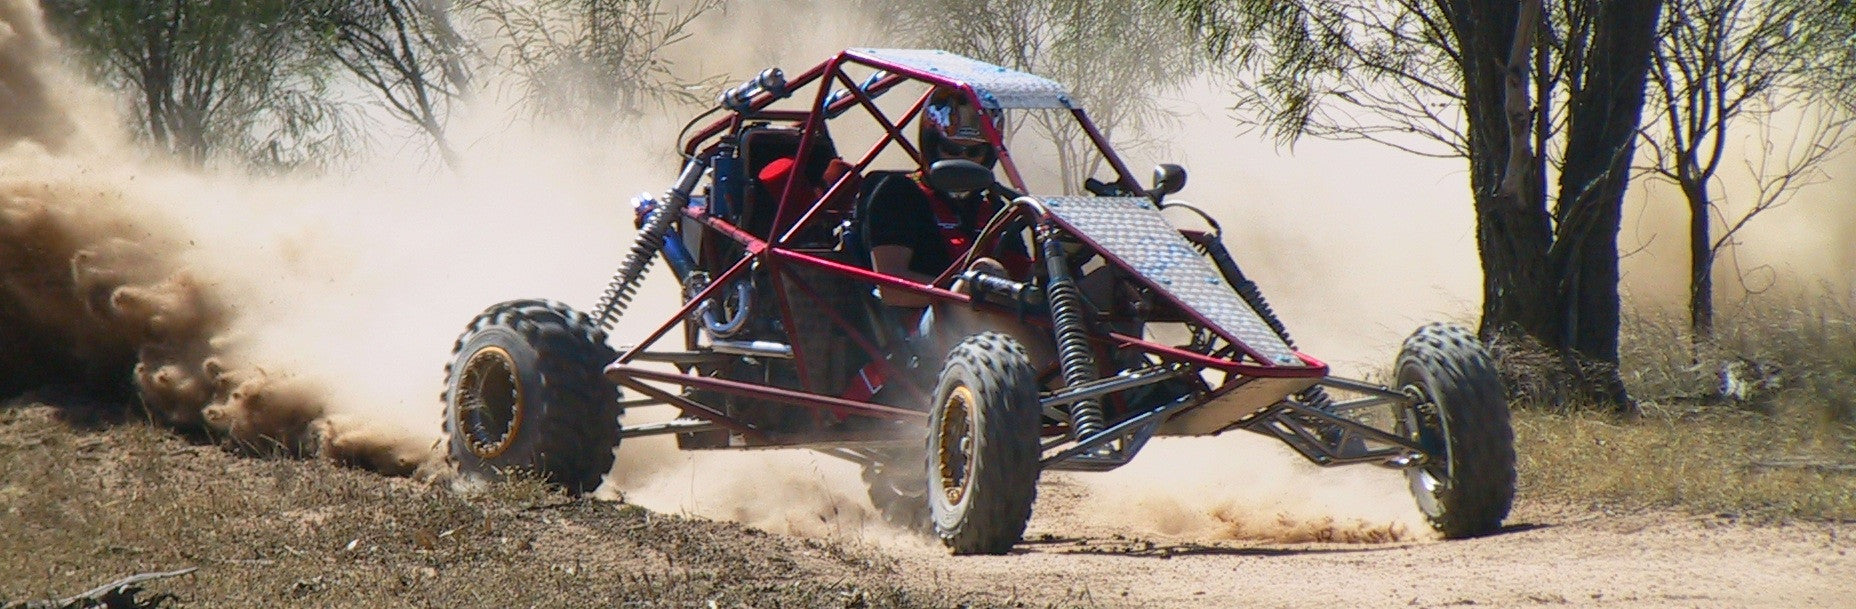 The Edge Products | The Edge Products - Dune Buggy Plans and Parts